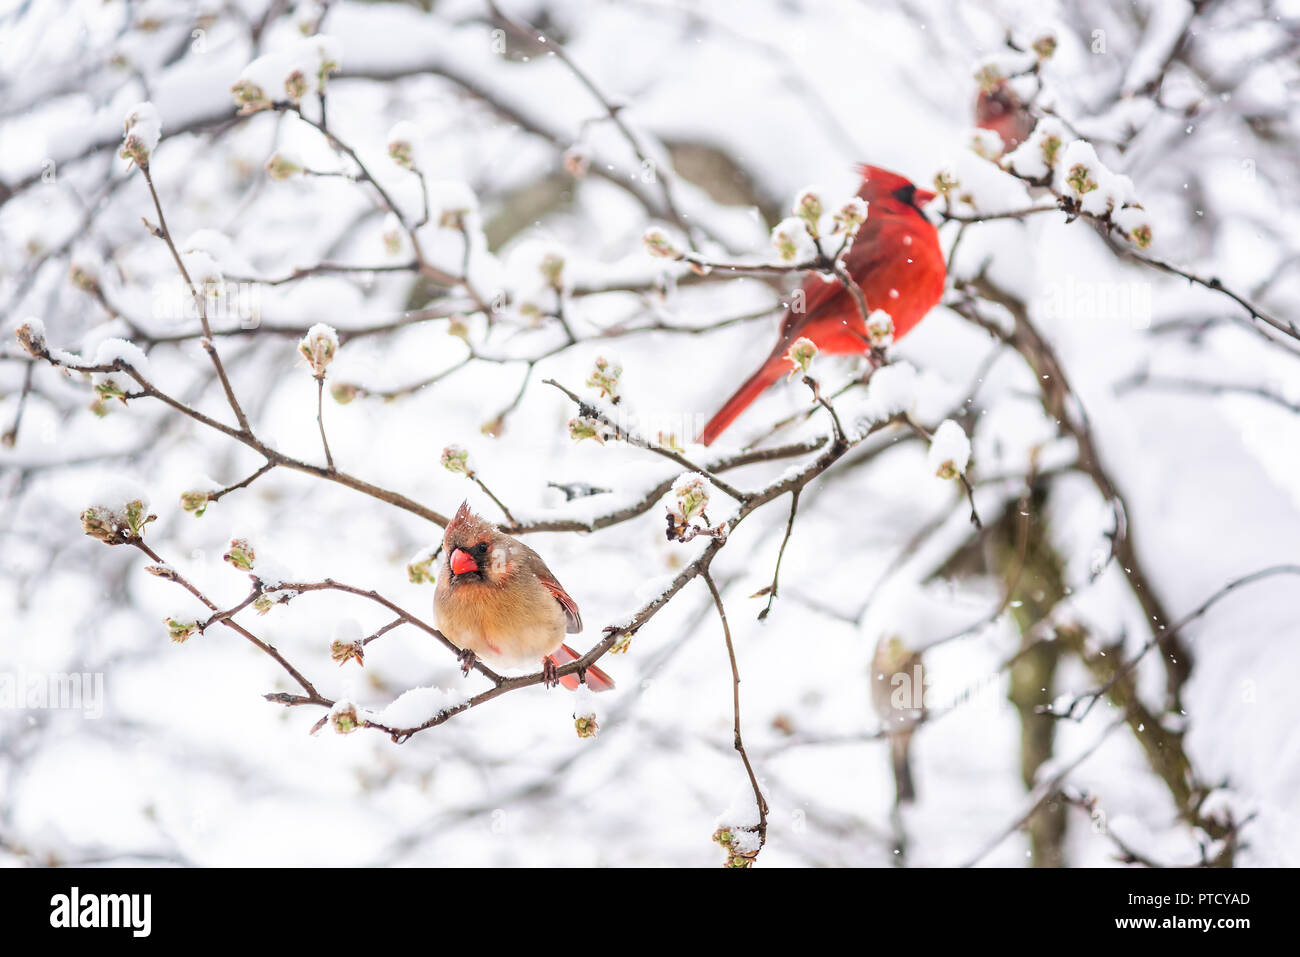 Two red northern cardinal, Cardinalis, birds couple perched on tree branch during heavy winter snow colorful in Virginia, flakes falling - Stock Image